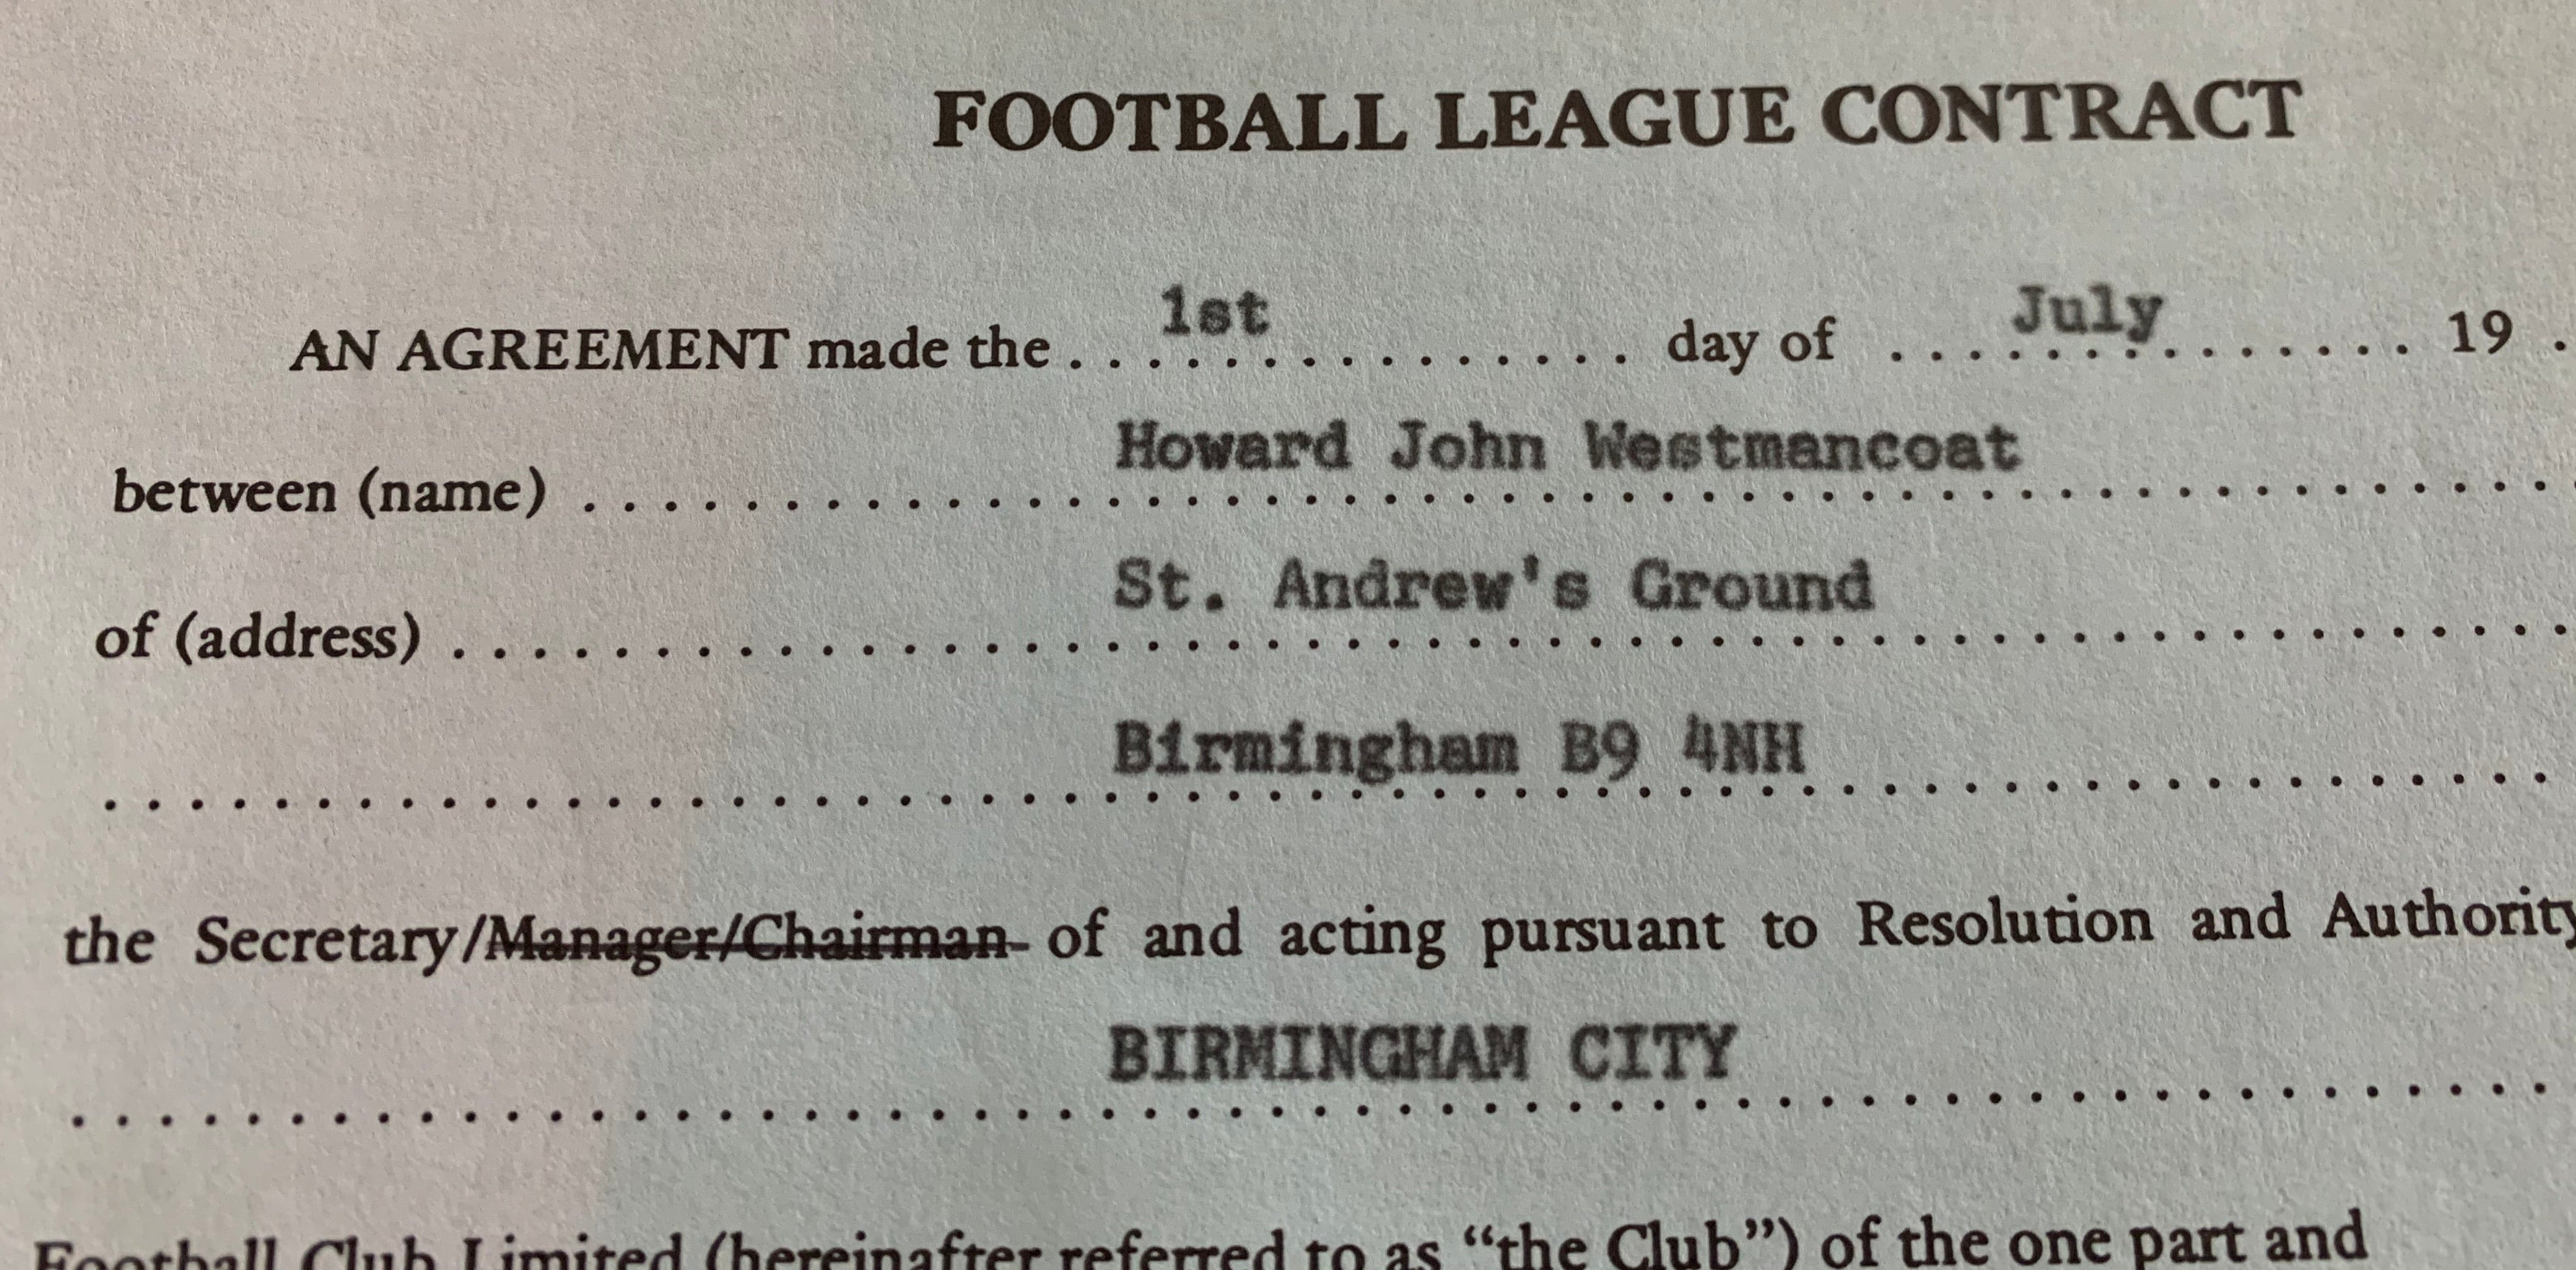 Football League Contract & Birmingham City FC Schedule of Playing Incentives - Des Bremner